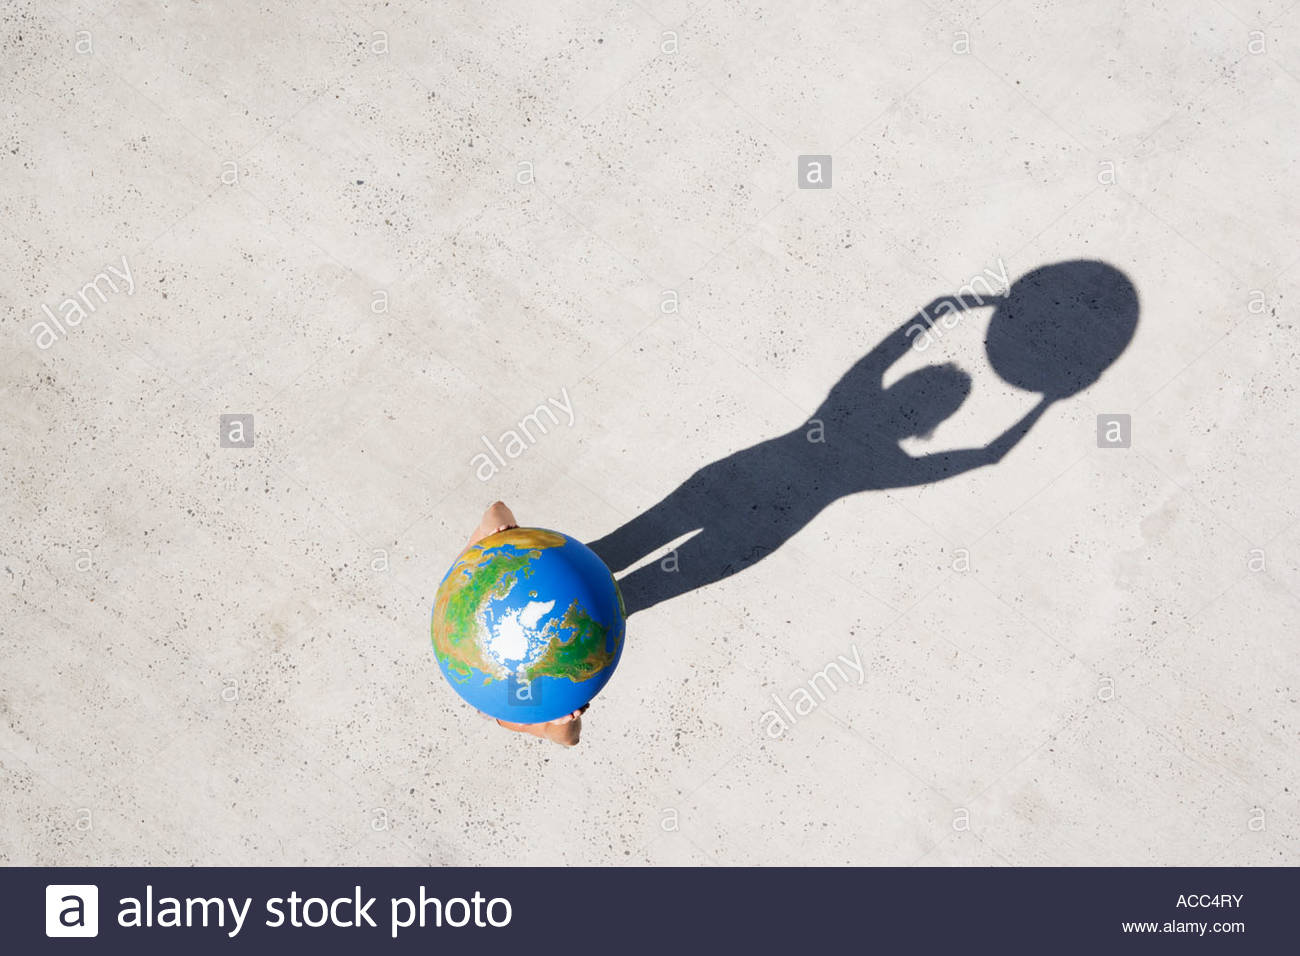 Aerial View of person holding globe above head with shadow - Stock Image